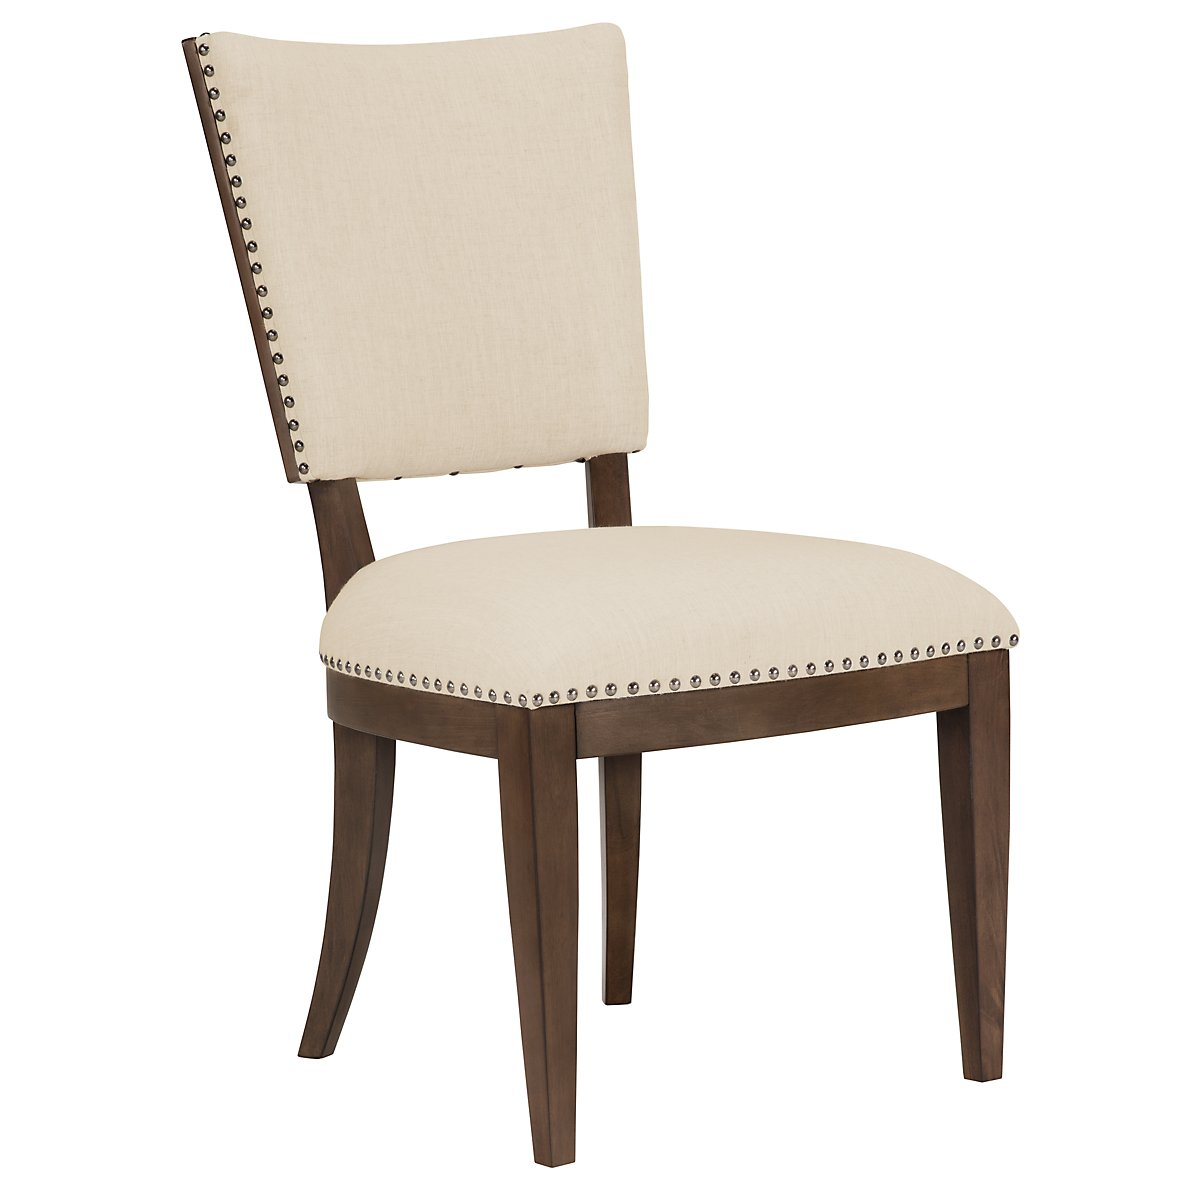 Preston Mid Tone Upholstered Side Chair